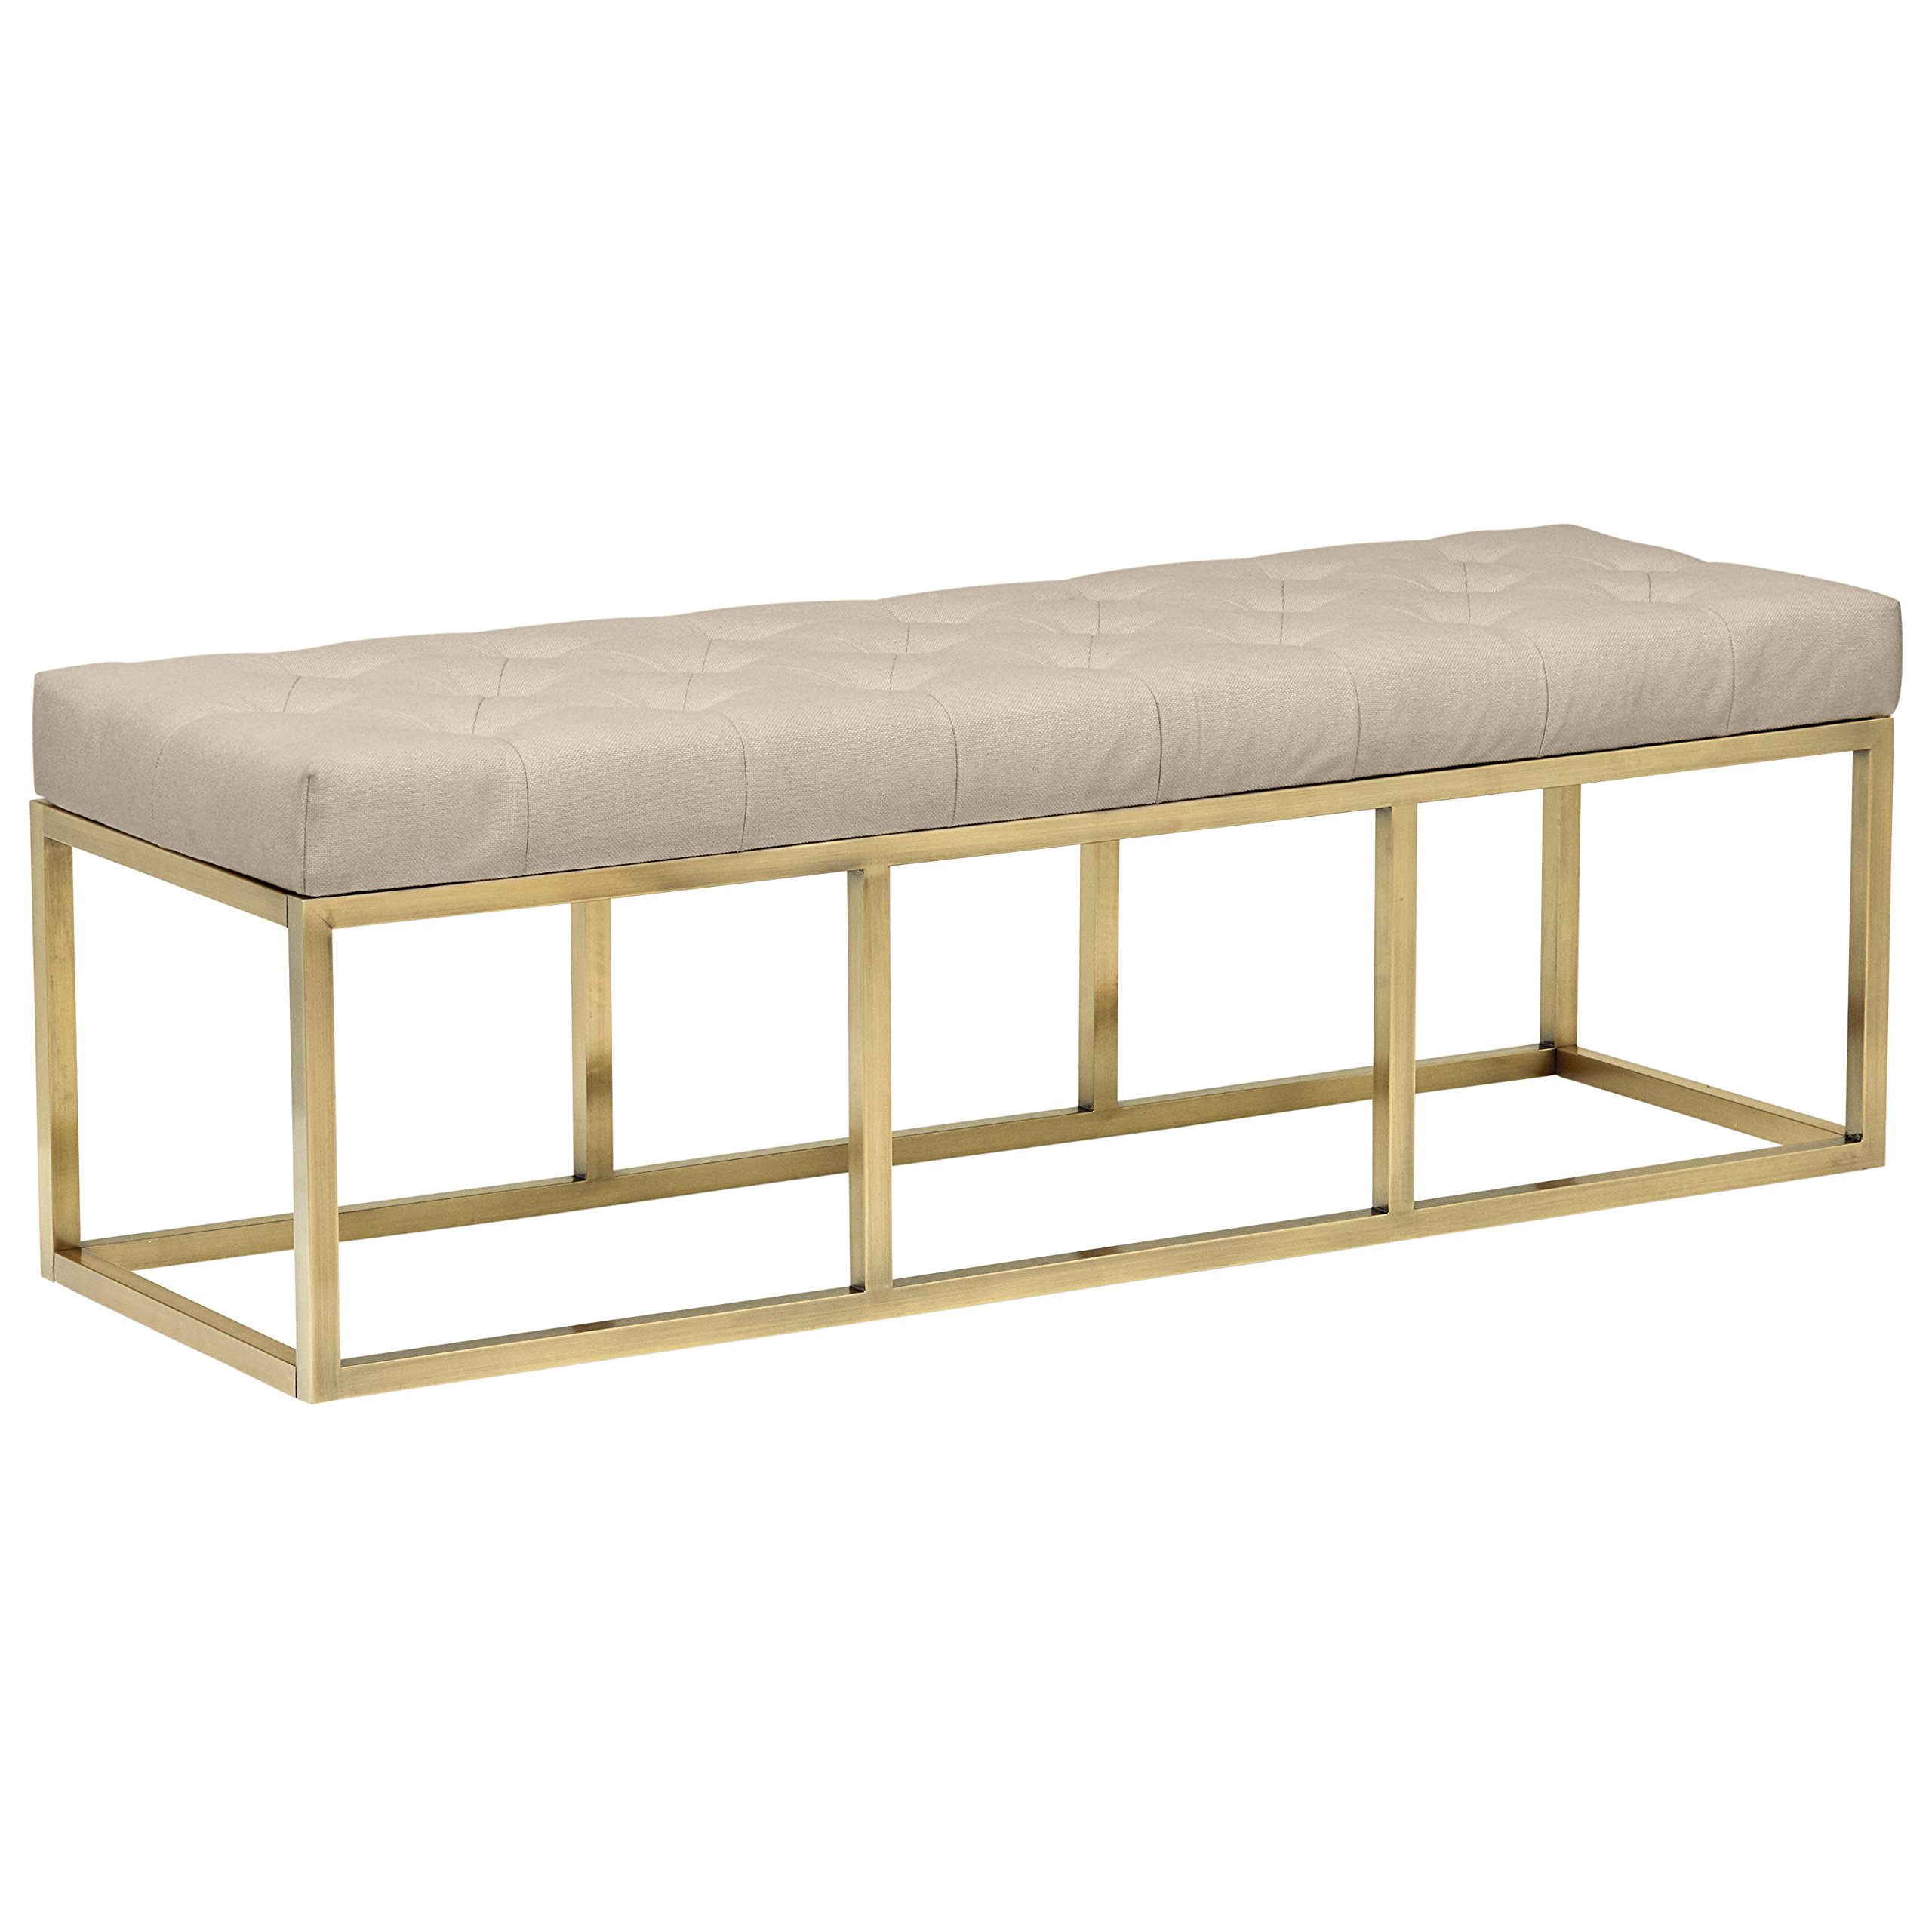 Rivet Glam Tufted Seat and Gold Legs Upholstered Bench, 58''L, Gold Finish